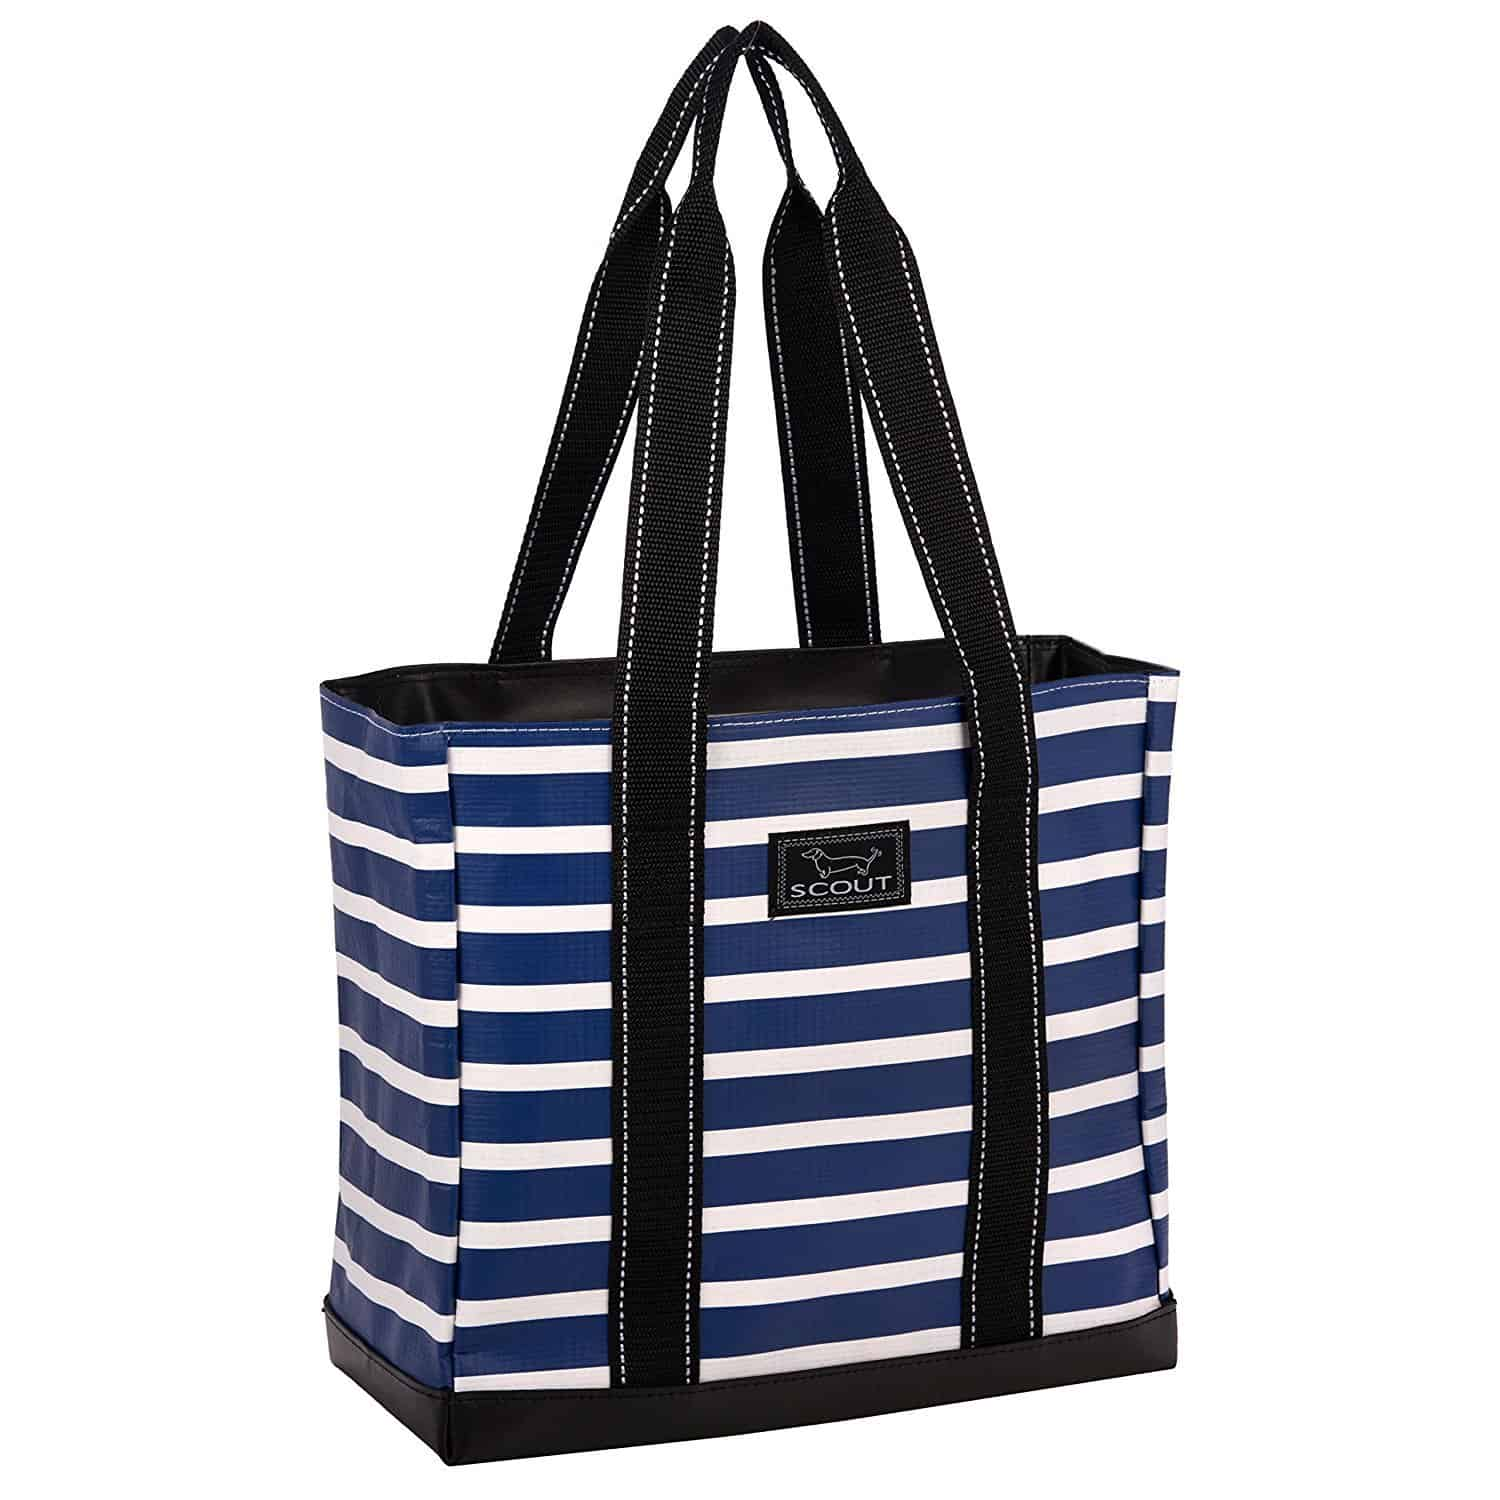 Scout Mini Deano Small Tote Bag Nantucket Navy